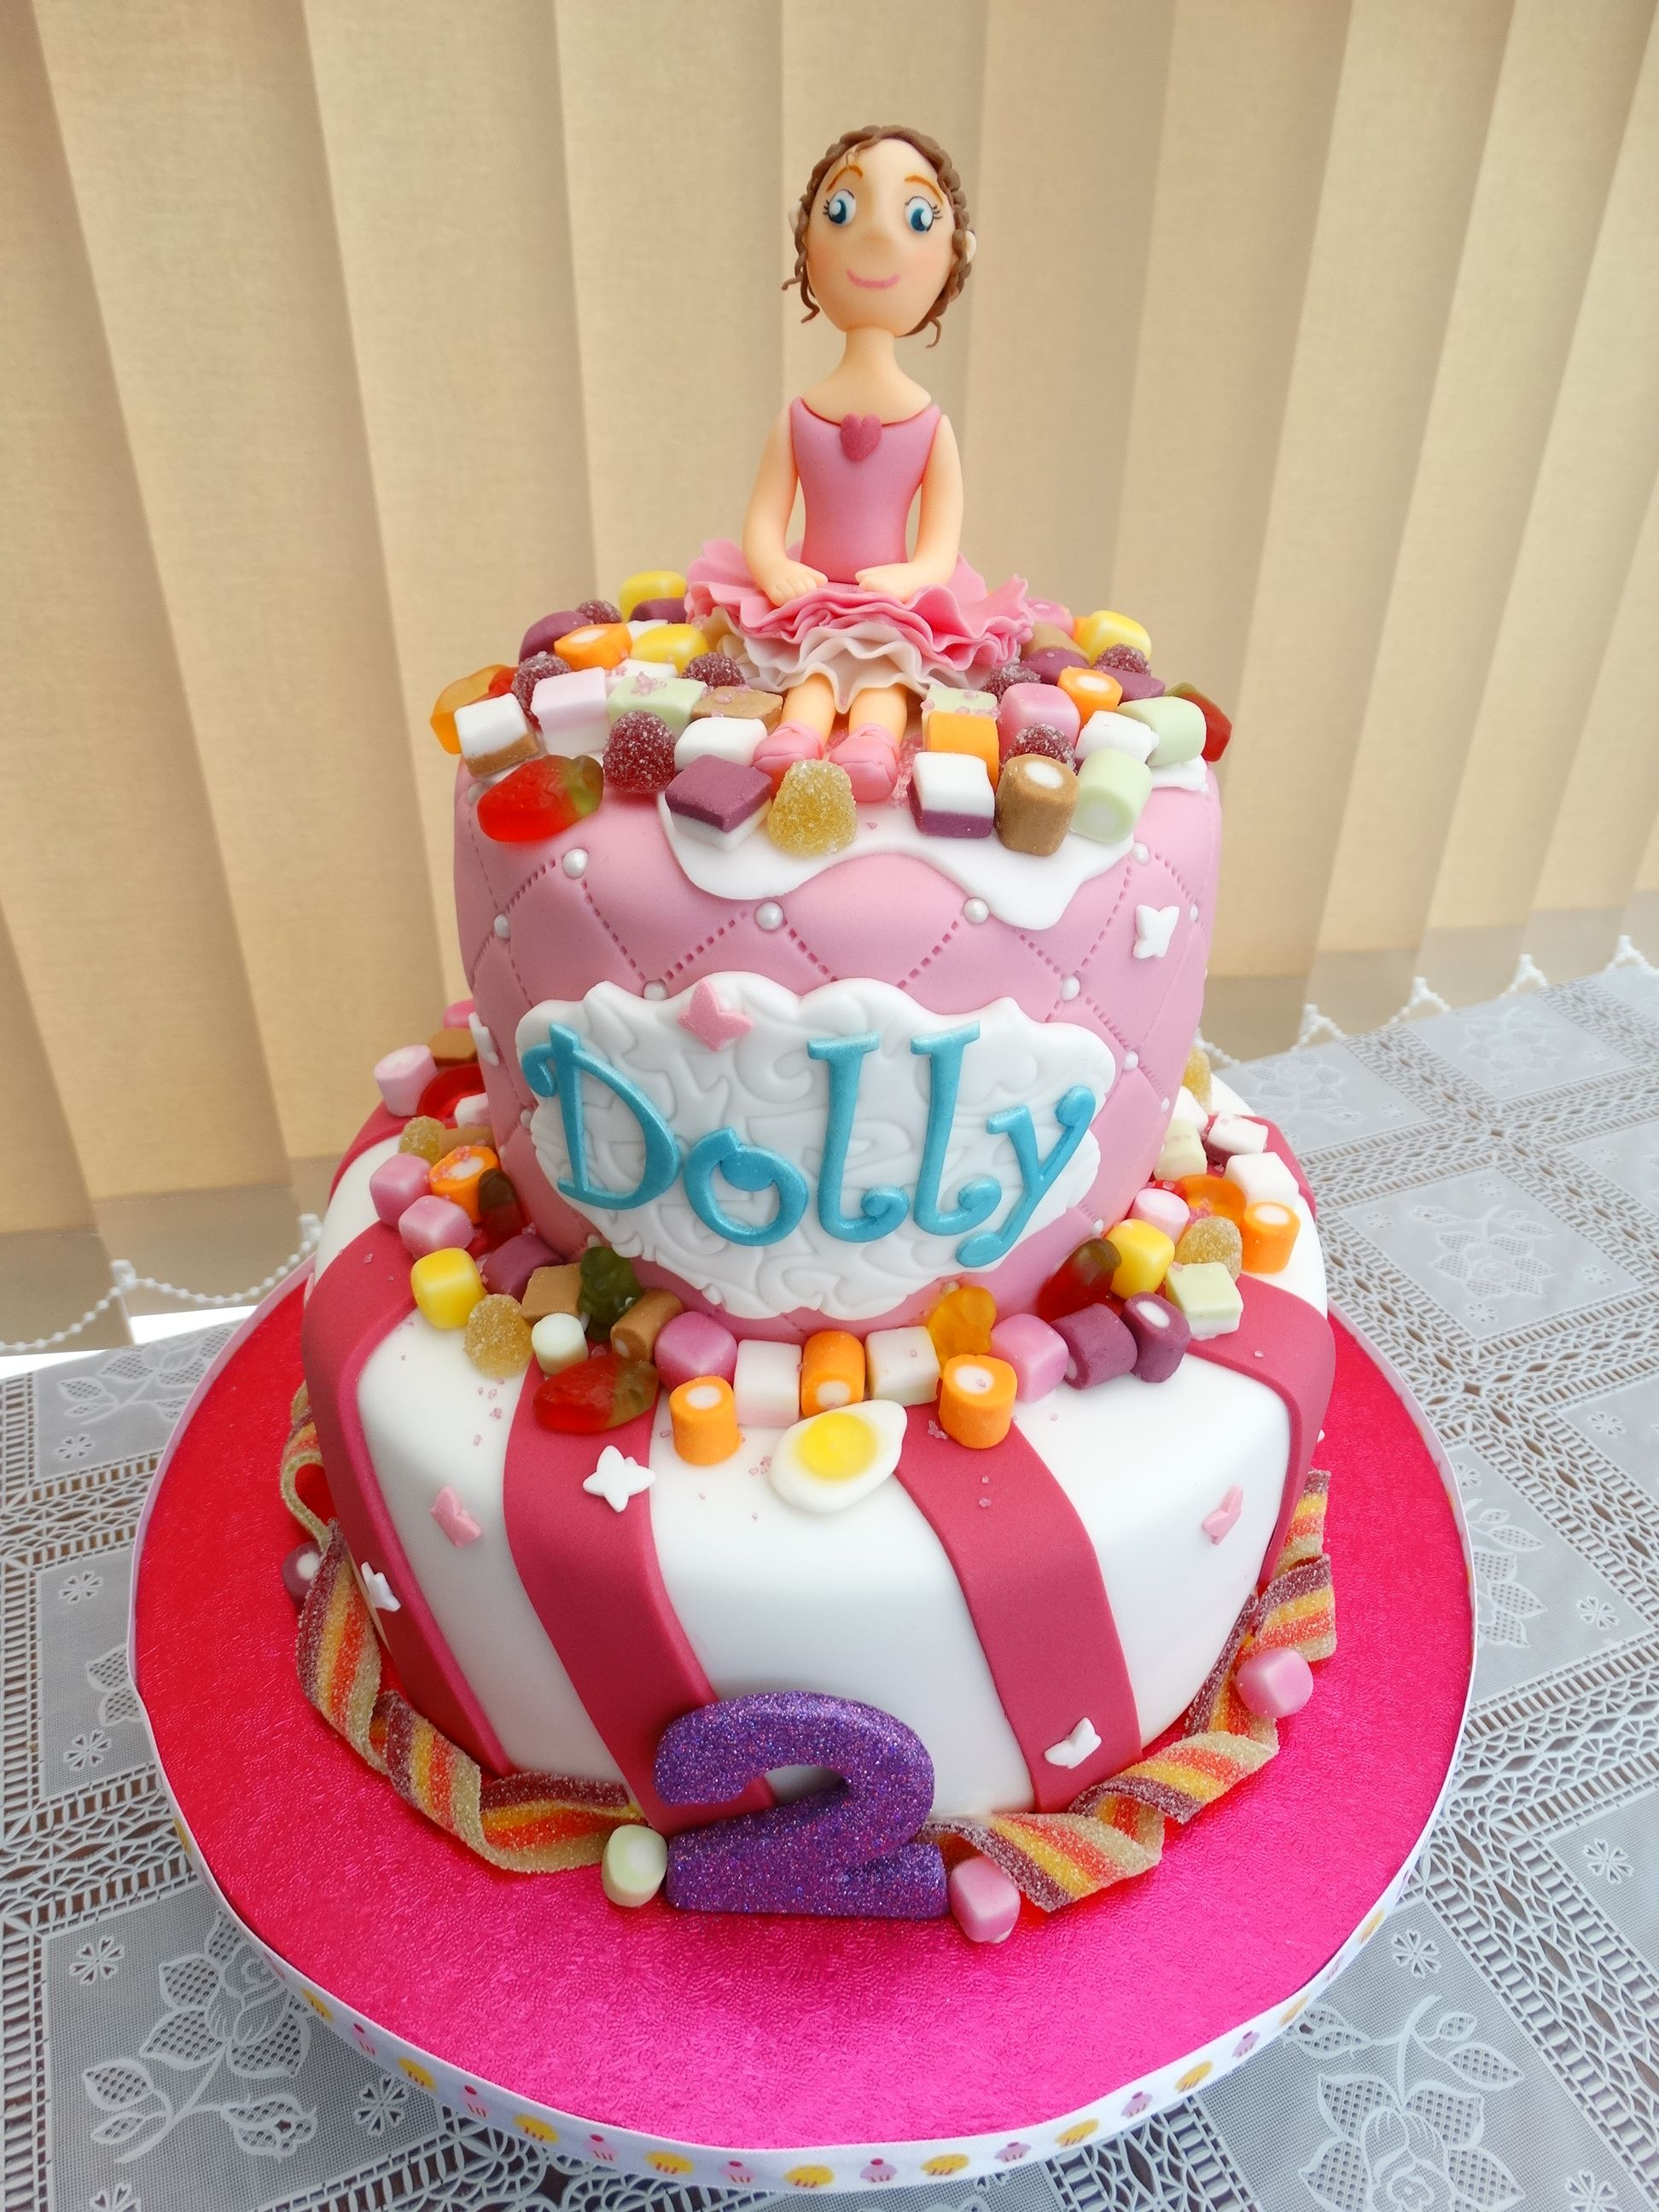 Ballerina with Dolly Mix Cake xMCx